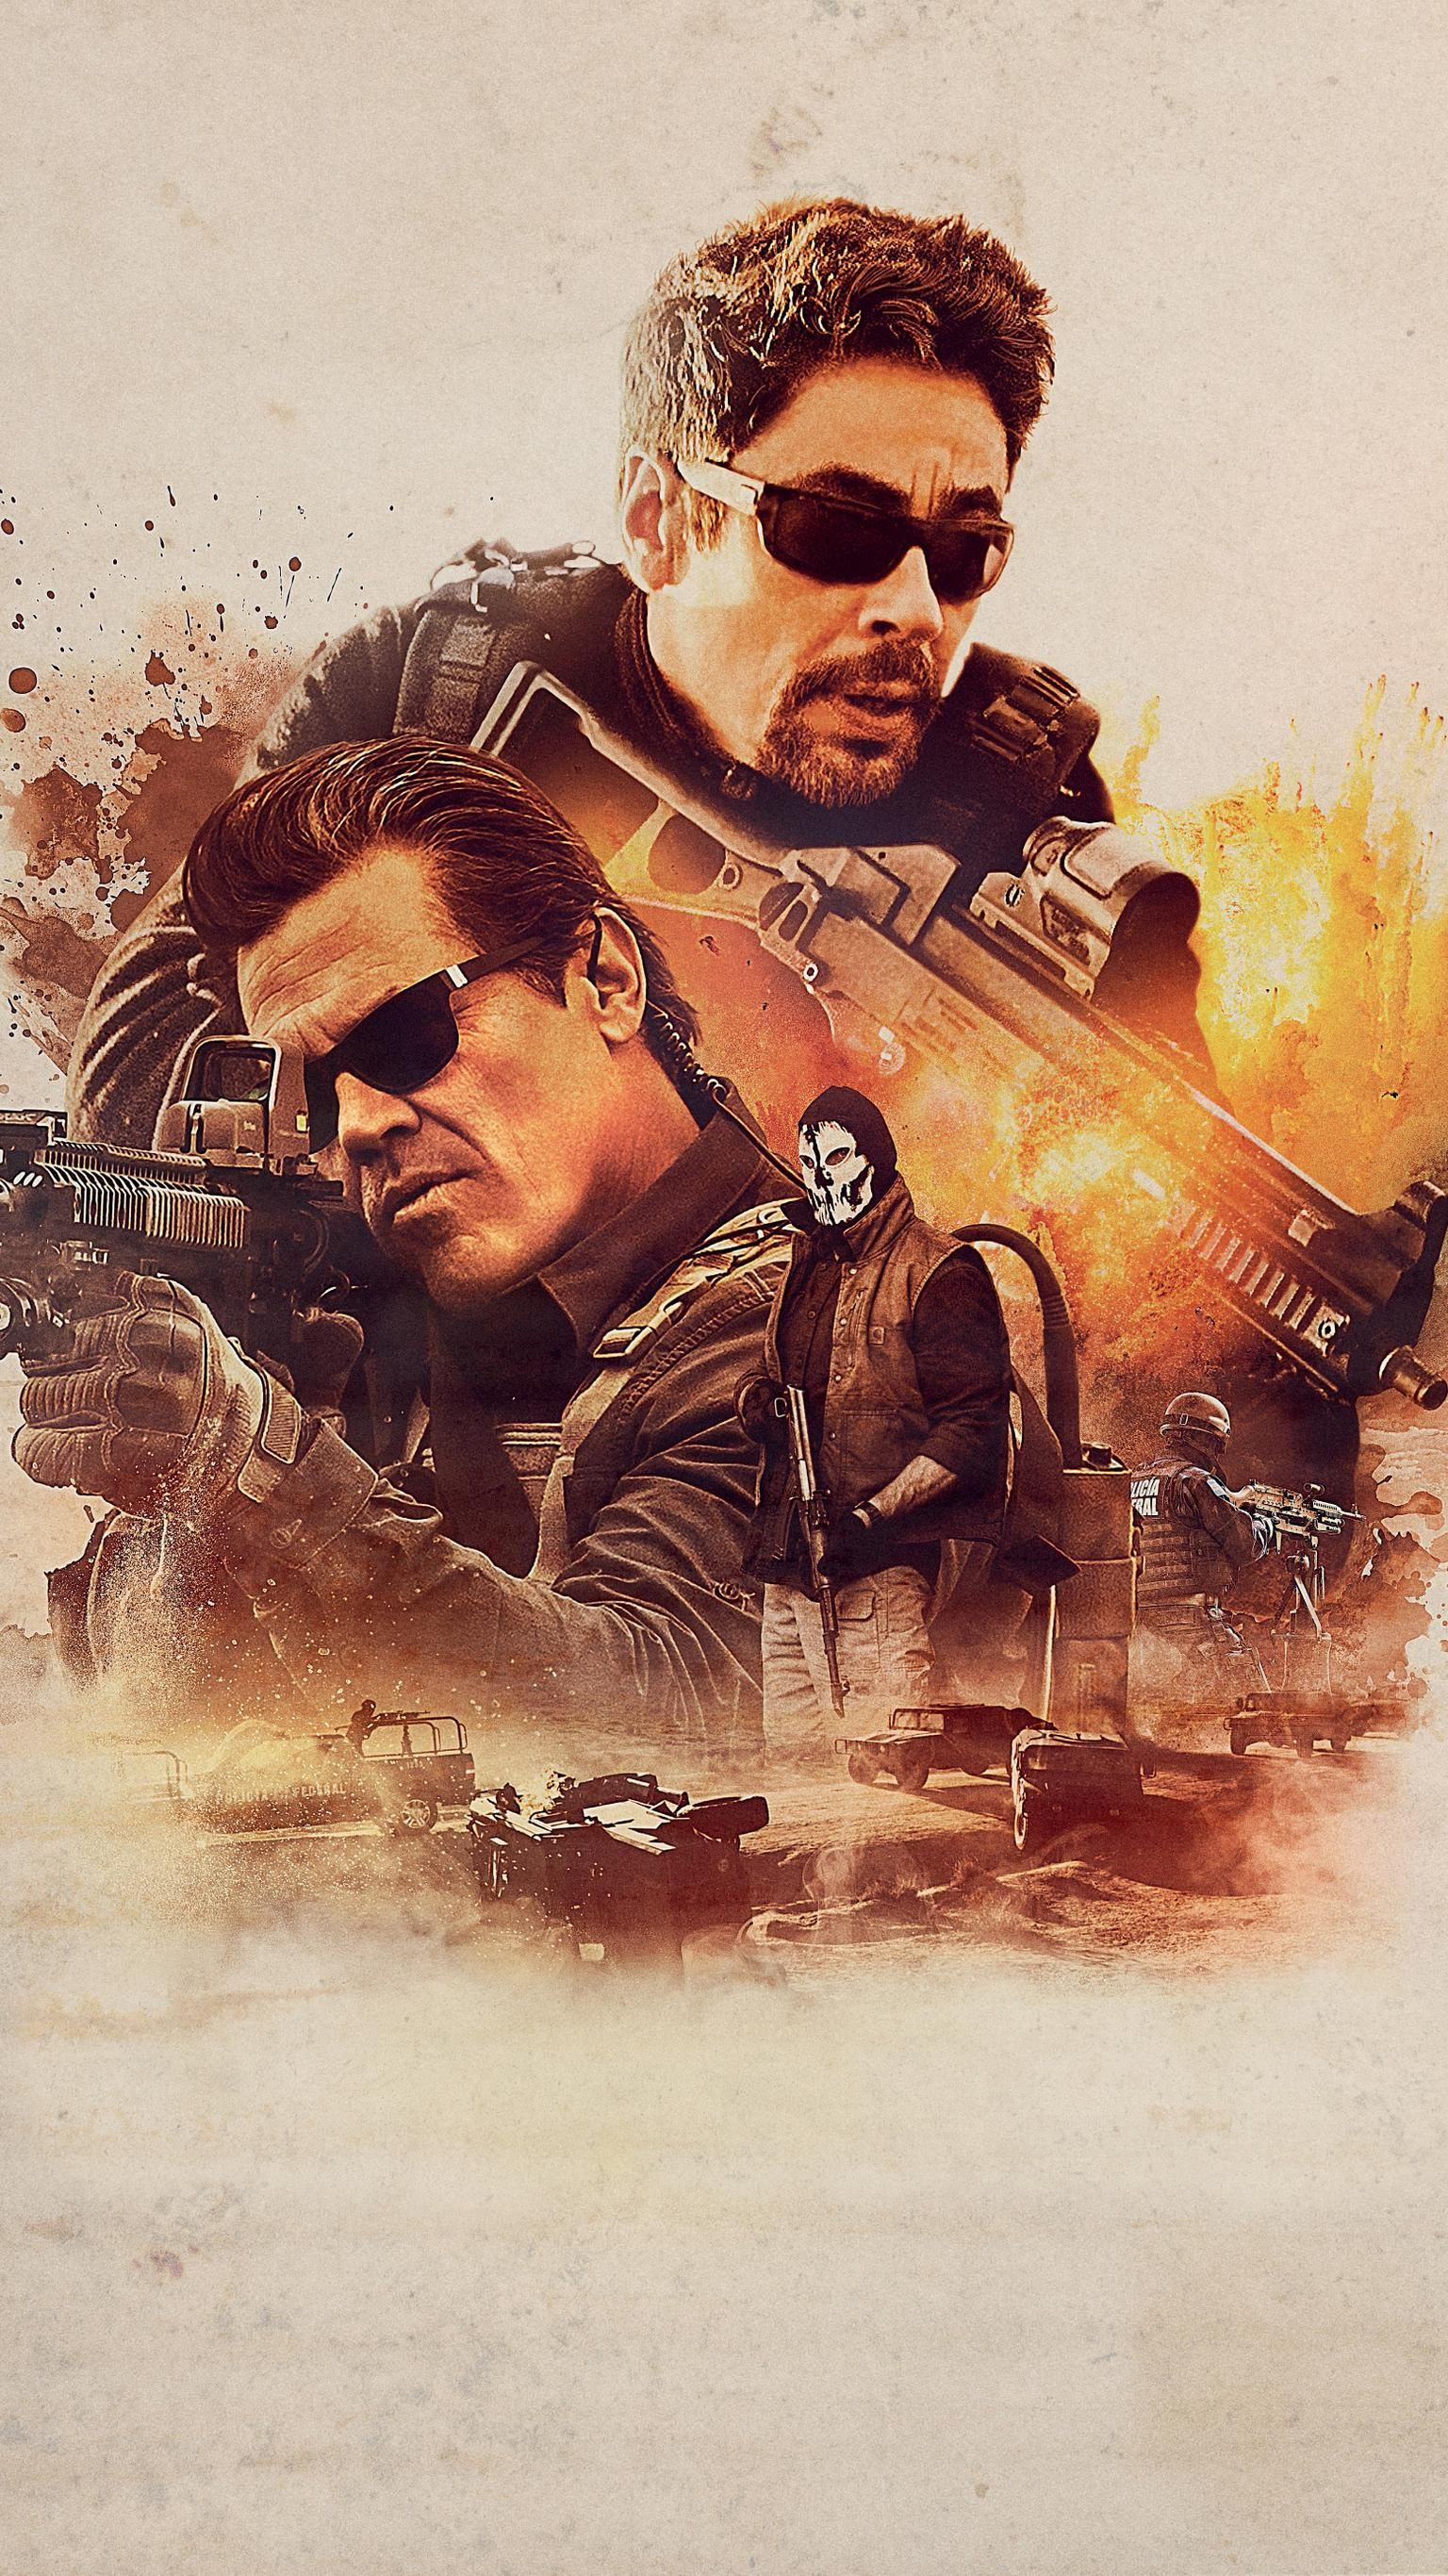 Film Sniper 2018 Subtitle Indonesia : sniper, subtitle, indonesia, Sicario:, Soldado, (2018), Phone, Wallpaper, Moviemania, Movies, Online,, Streaming, Free,, Online